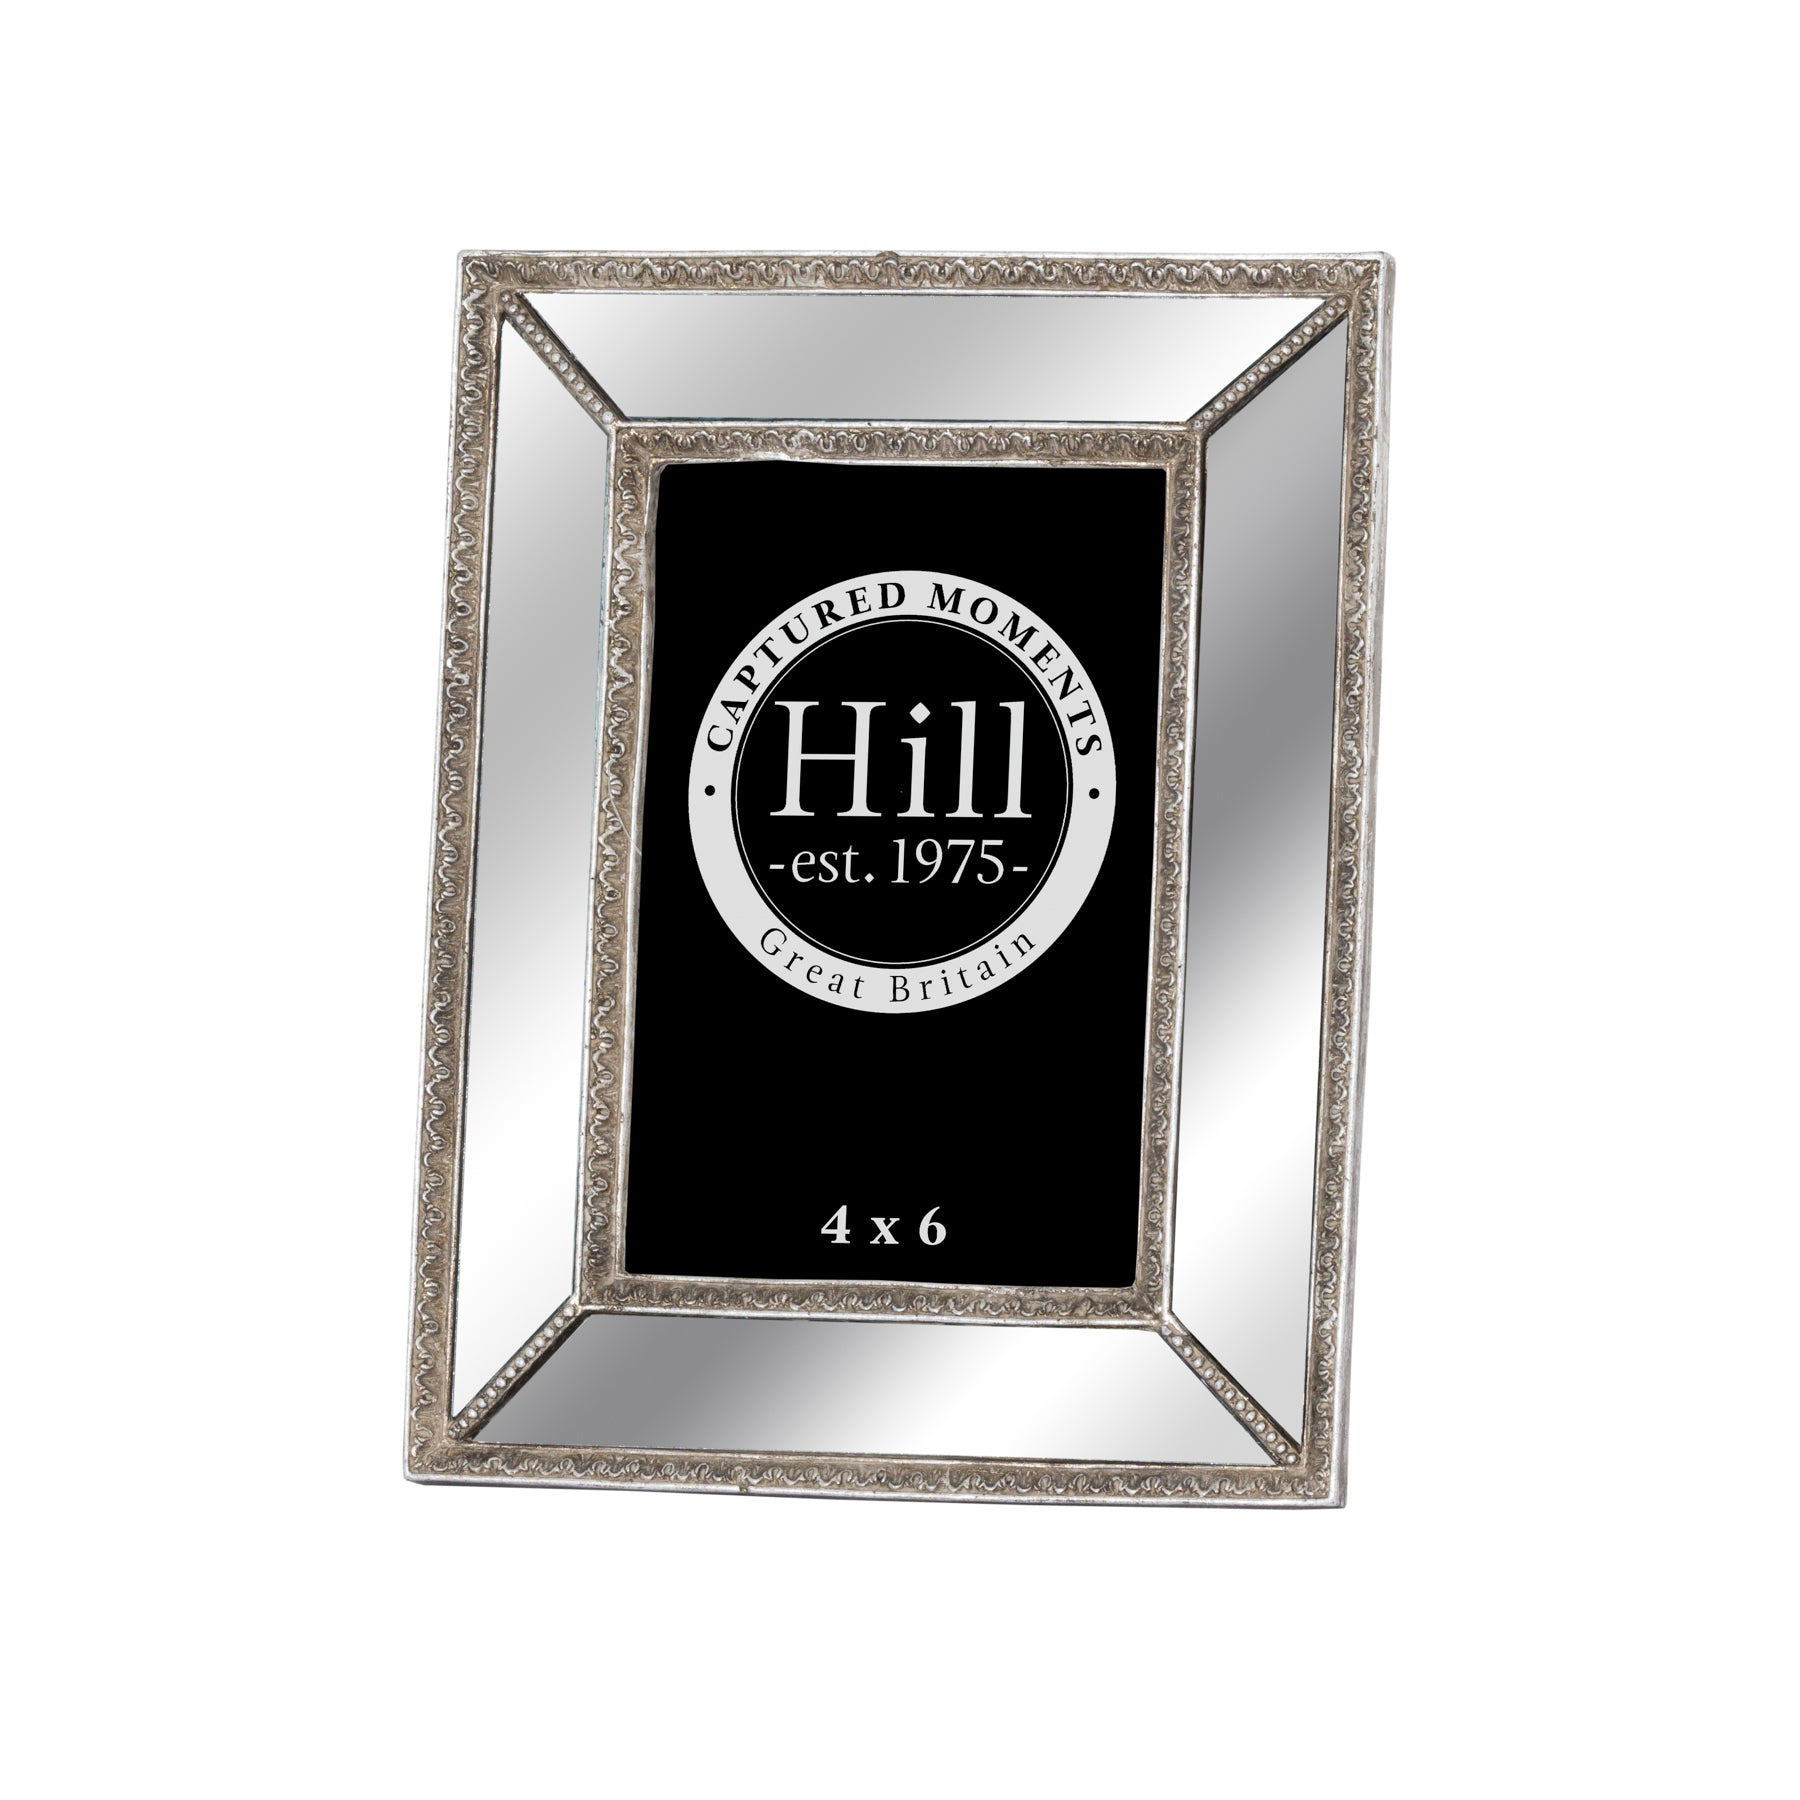 Mirrored Bevelled Photo Frame In Antique Silver With Detailed Edge 4X6